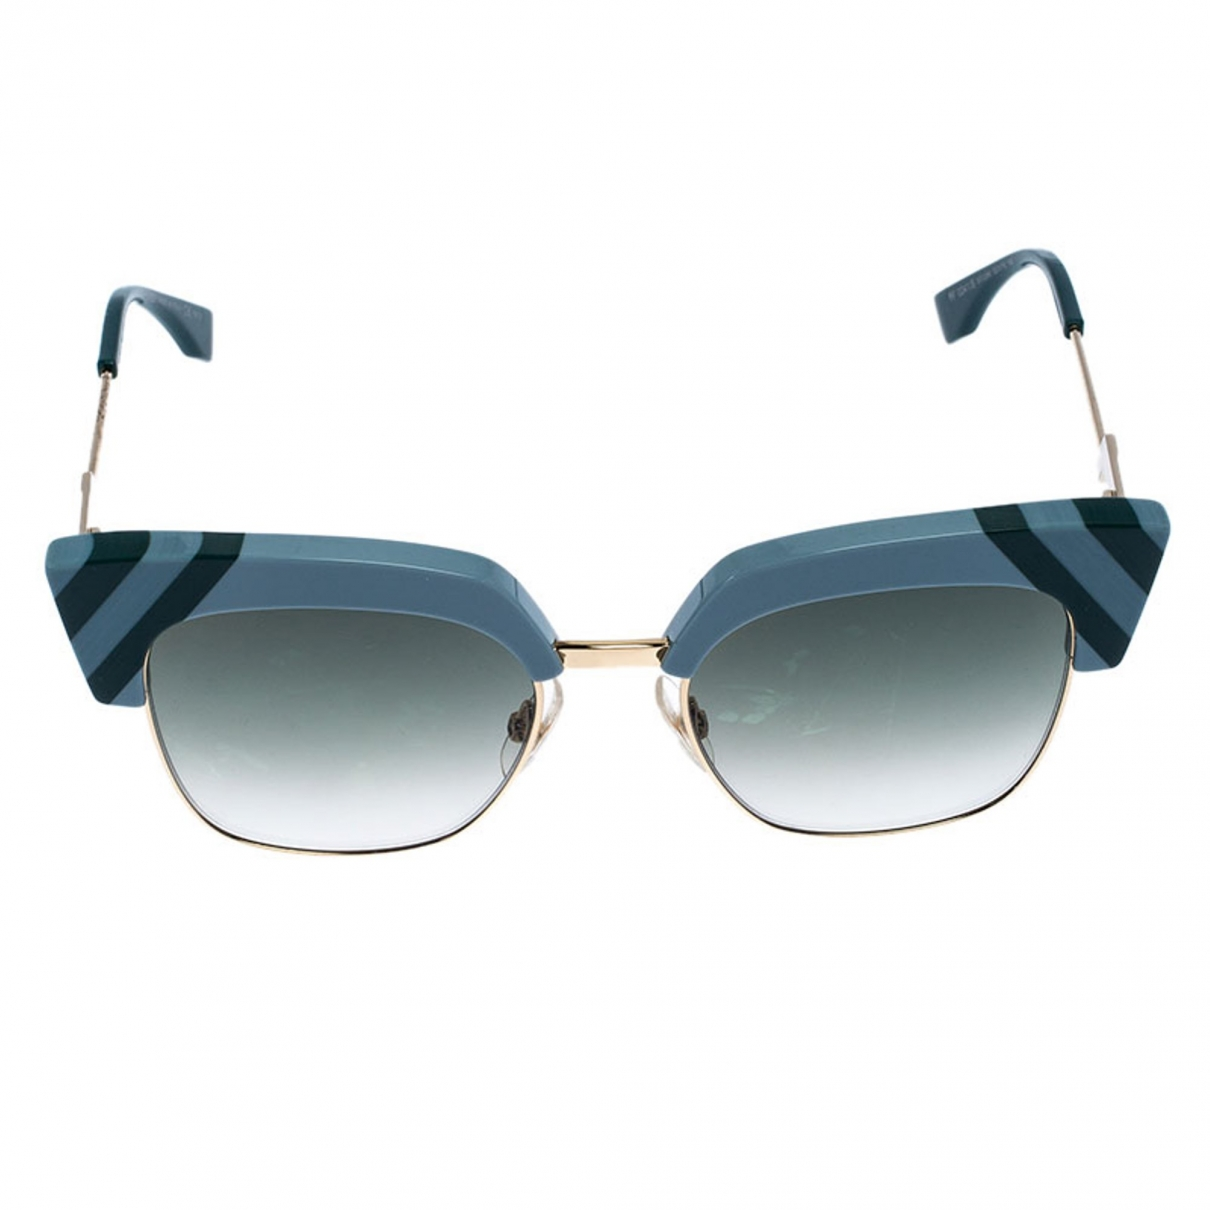 Fendi \N Green Sunglasses for Women \N